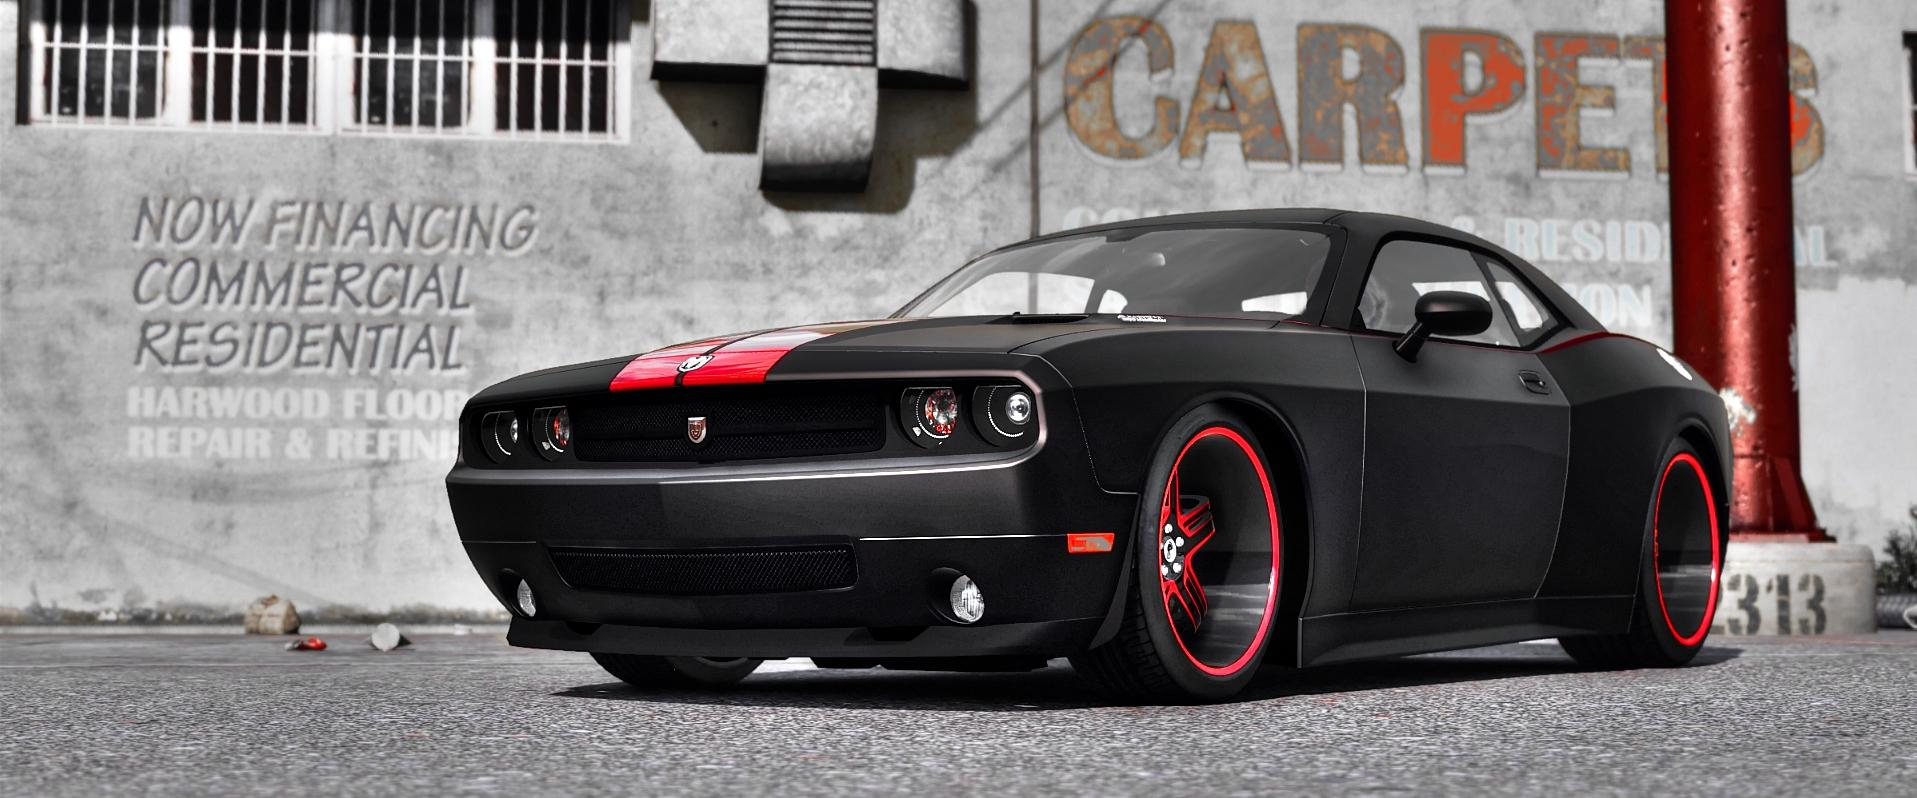 2010 dodge challenger srt8 rampage edition add on. Black Bedroom Furniture Sets. Home Design Ideas